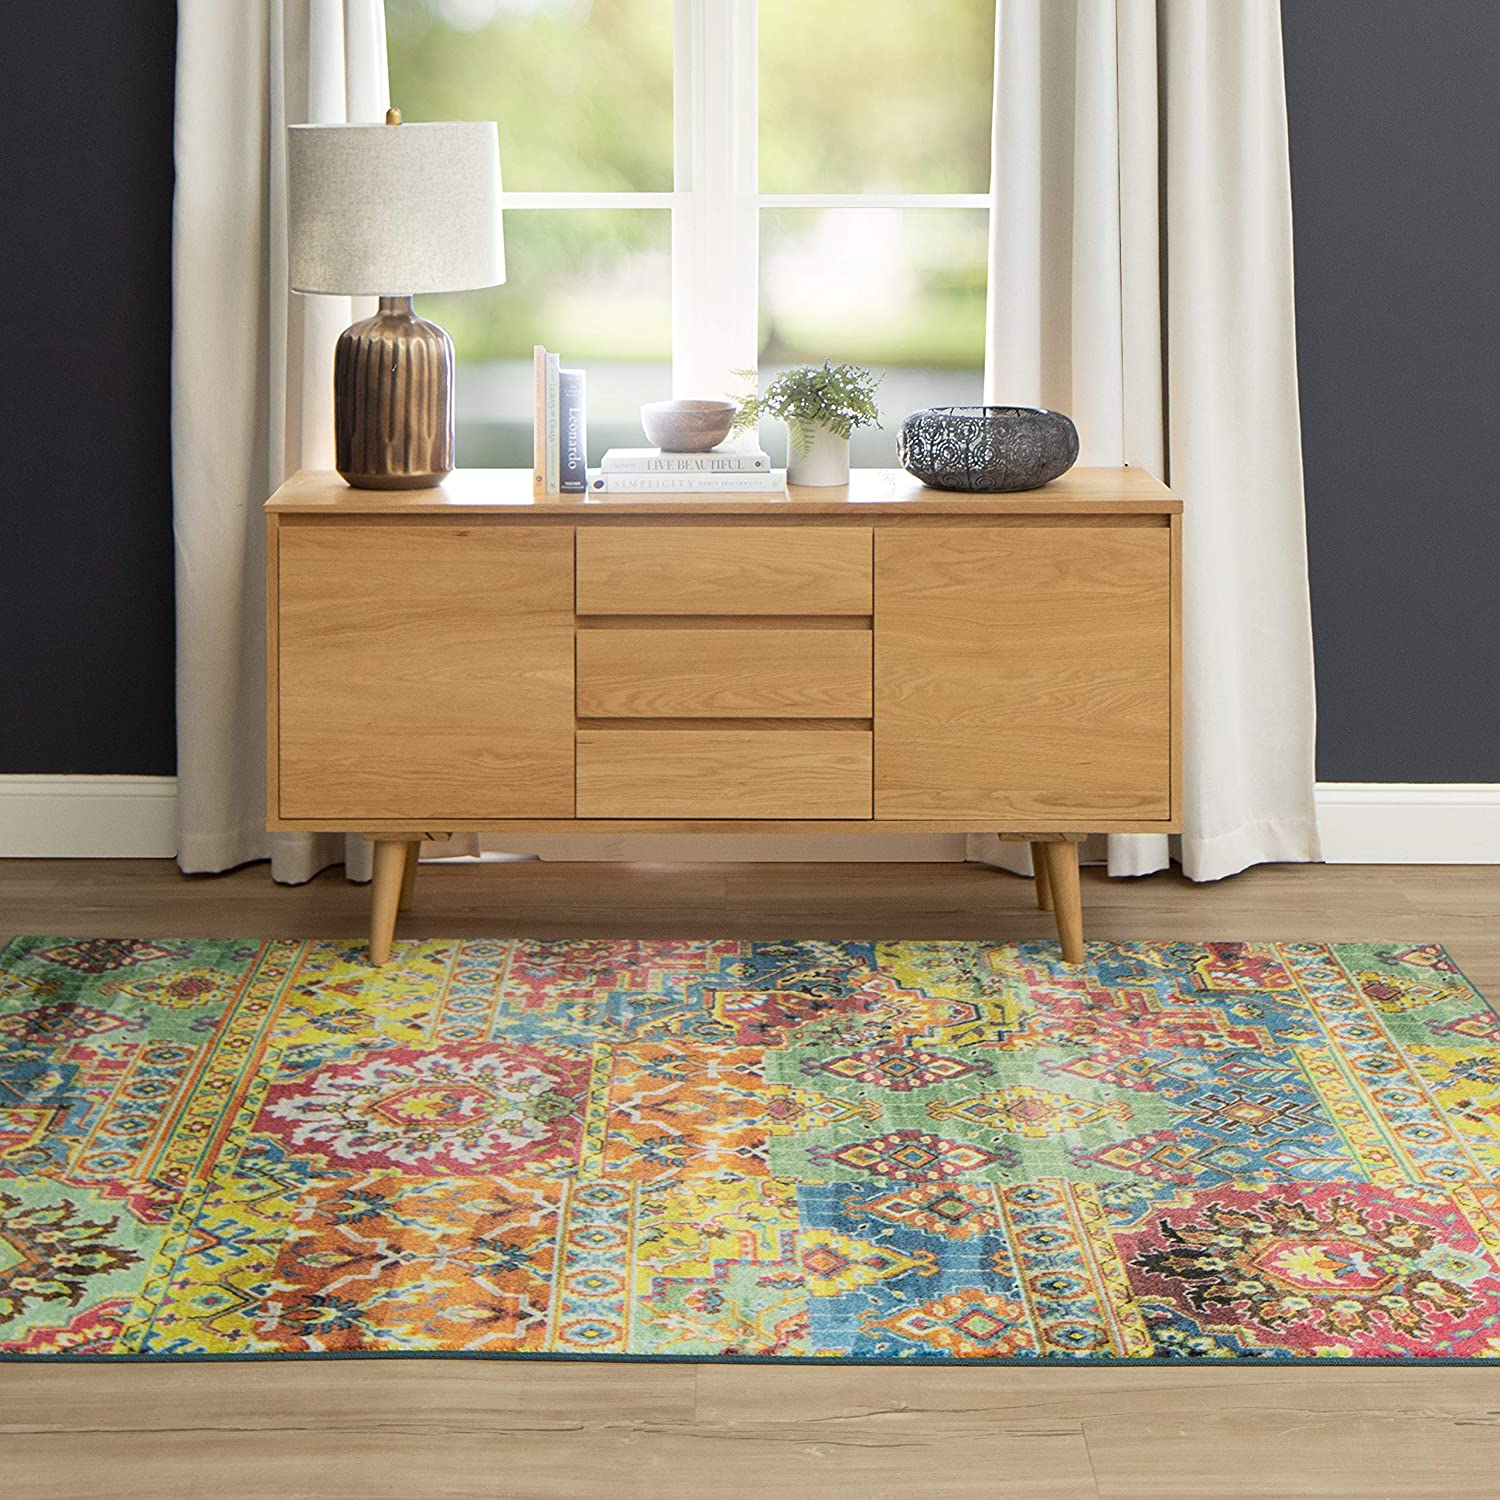 Mohawk Home Prismatic Plano Area Rug, 5'0 X 8'0, MULTI